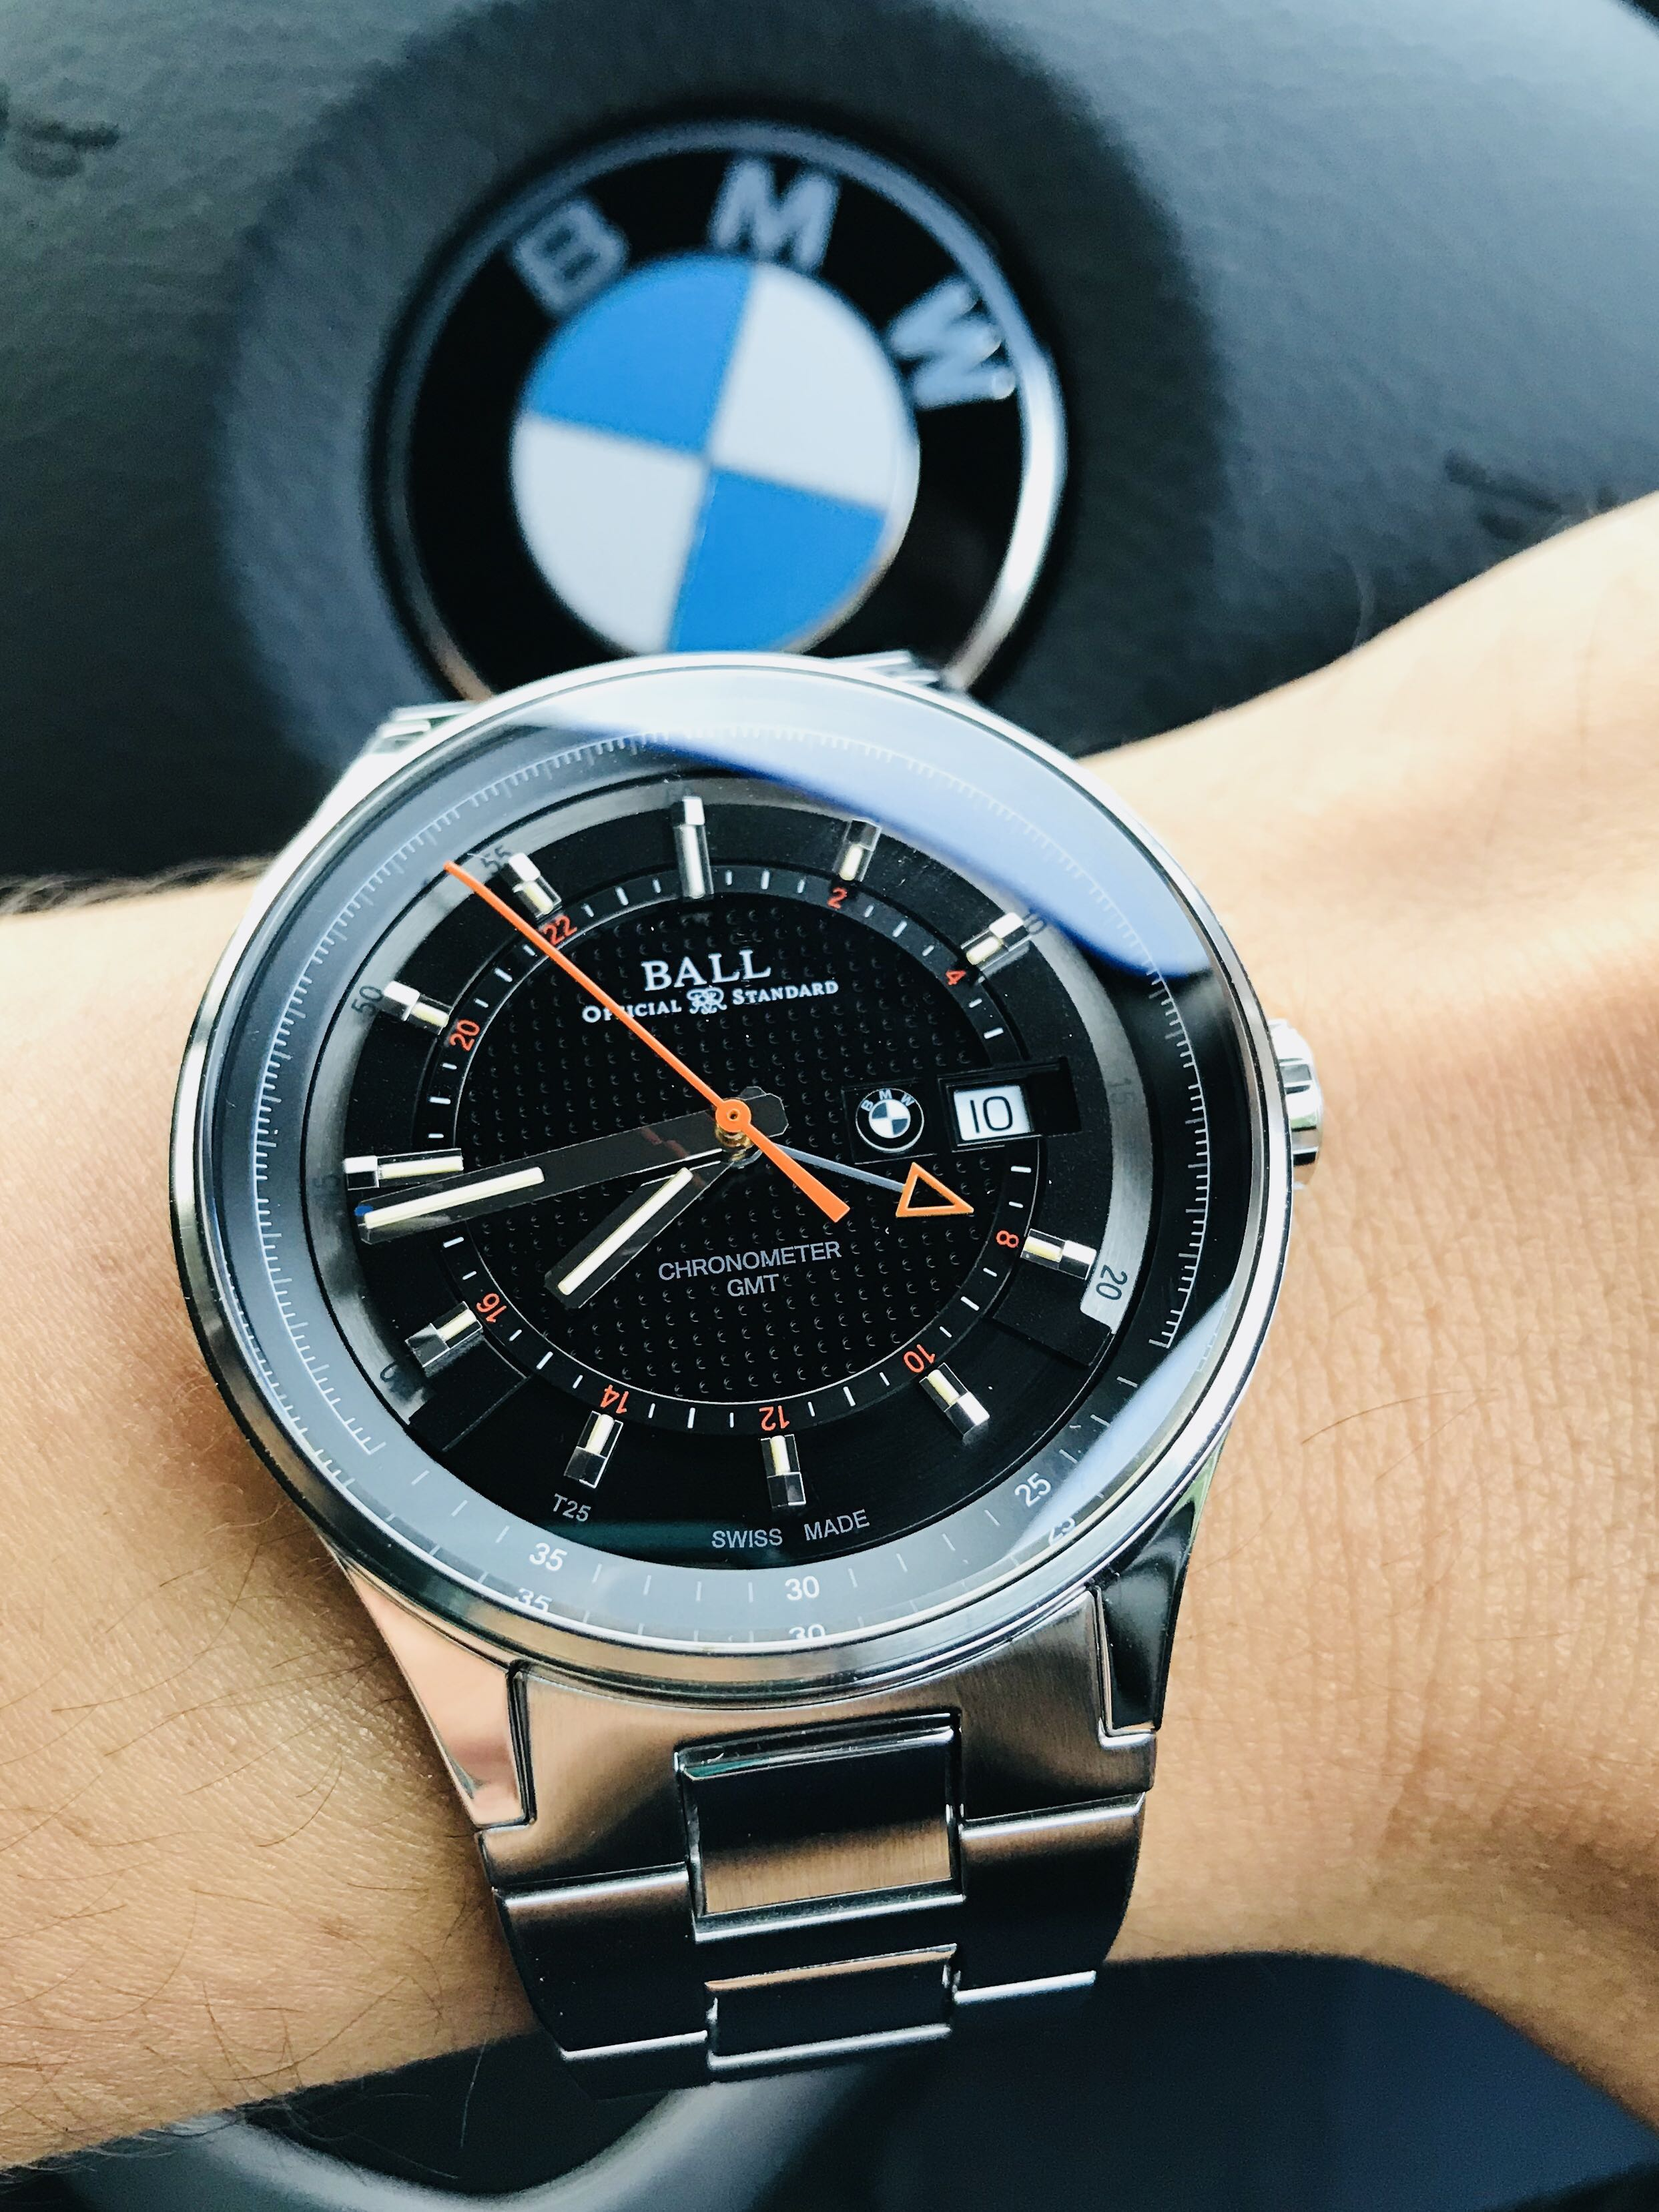 international wins chronometry competition edition mecanograph chronometer moinet watches in pin louis limited bmw ball place